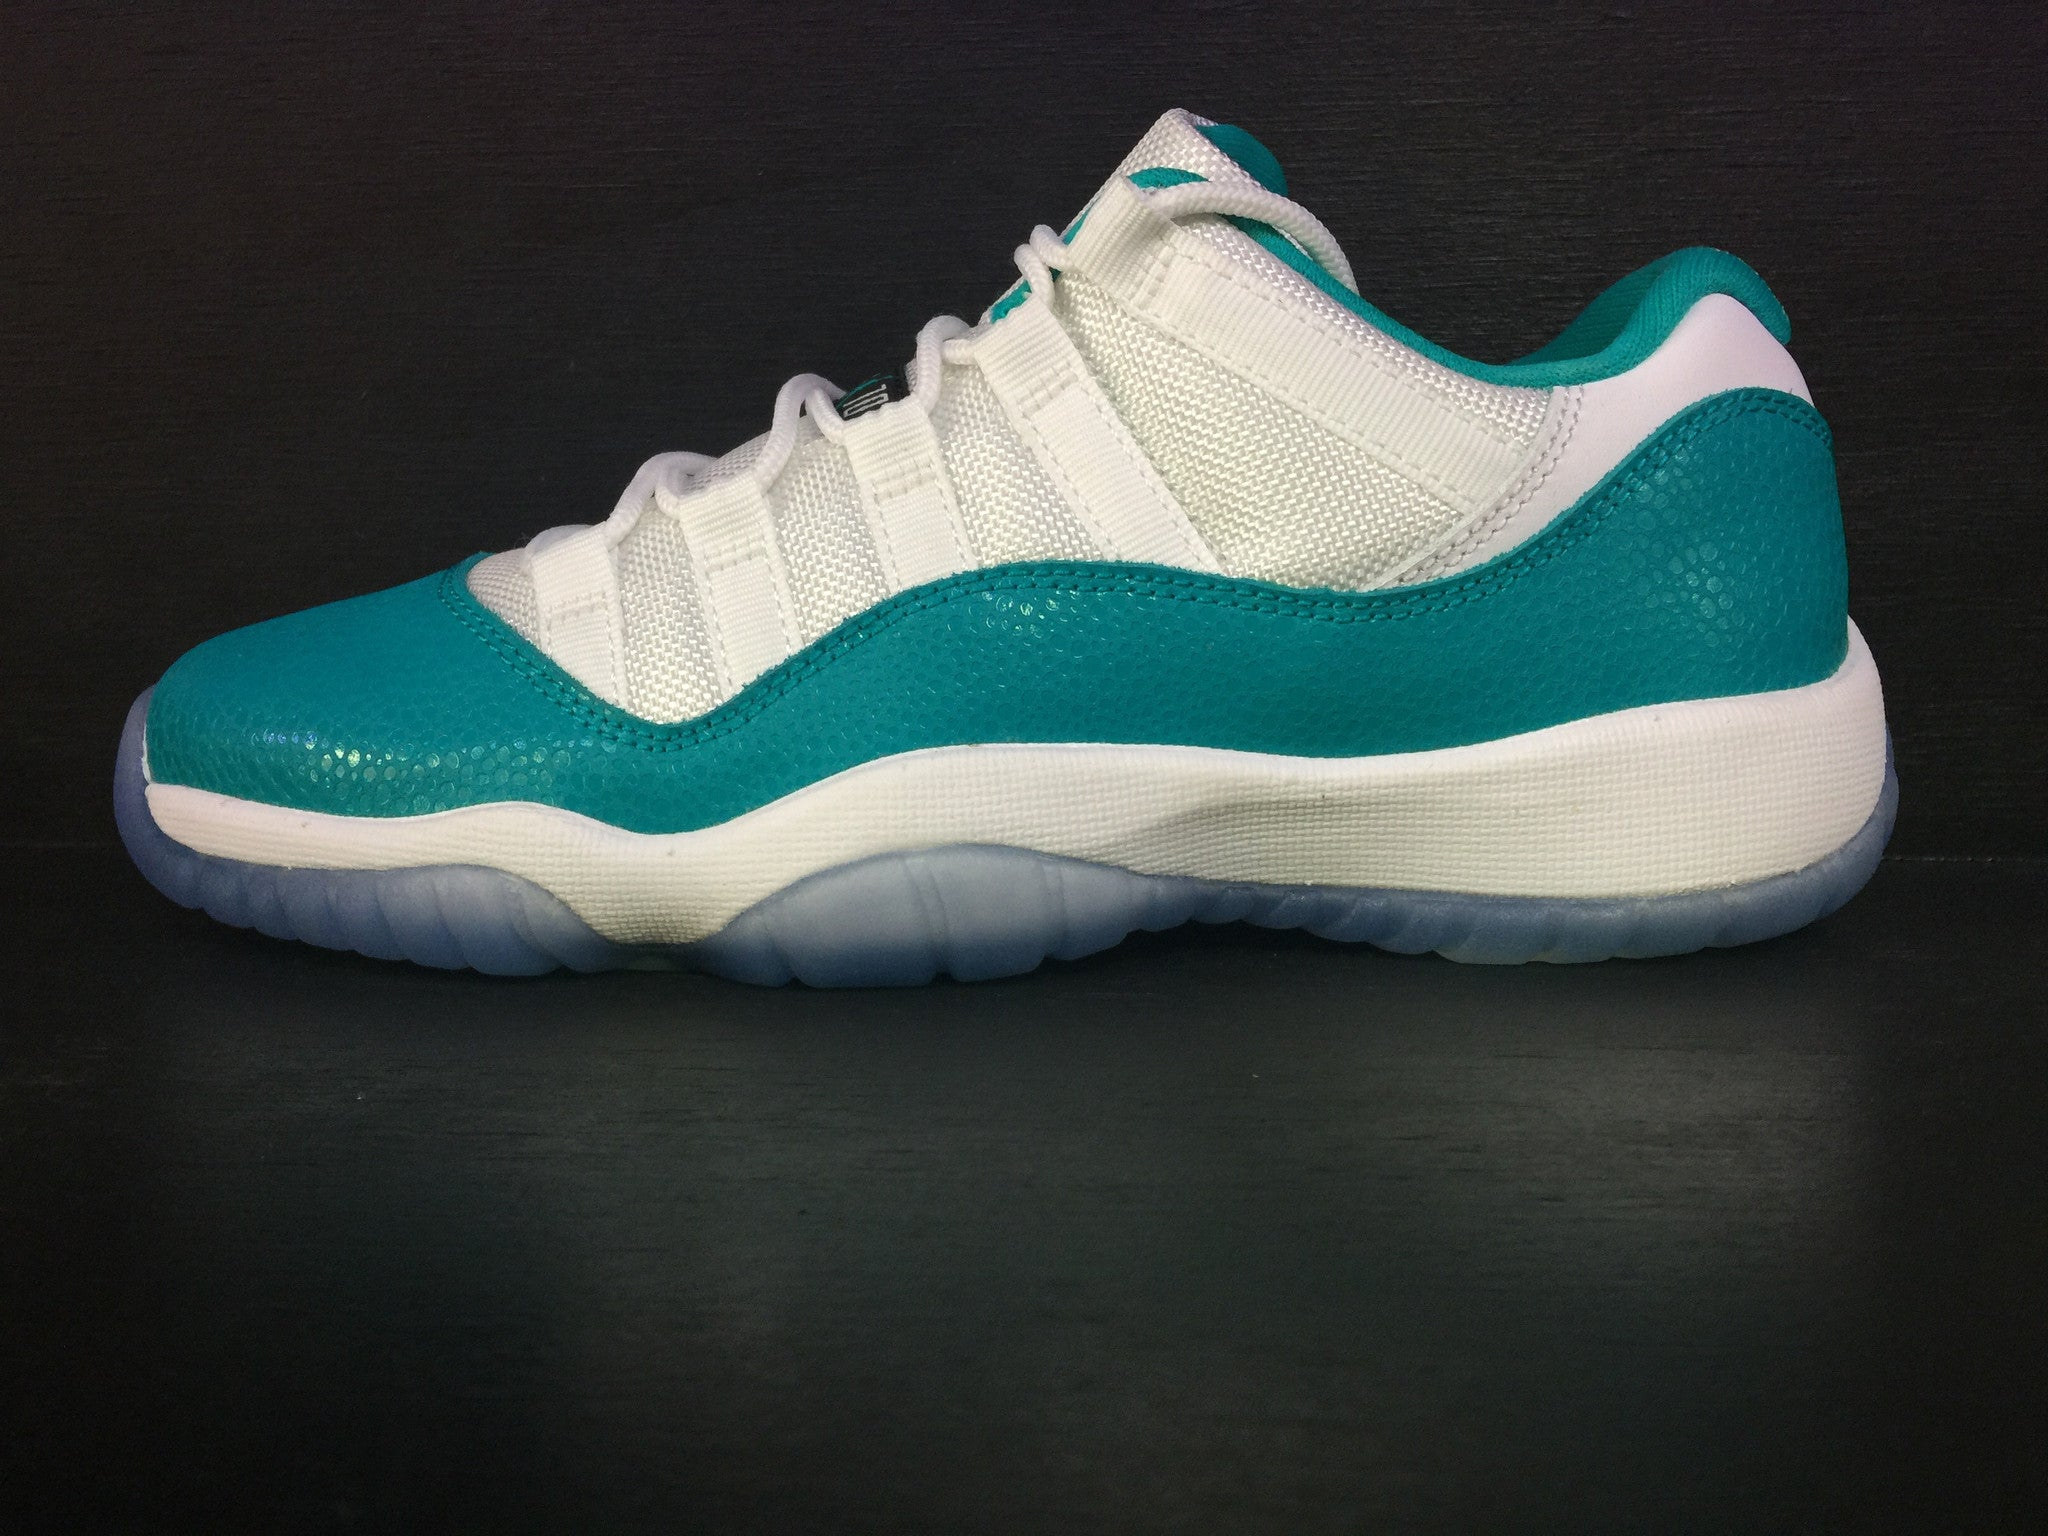 Air Jordan 11 Retro Low GG 'Aqua'